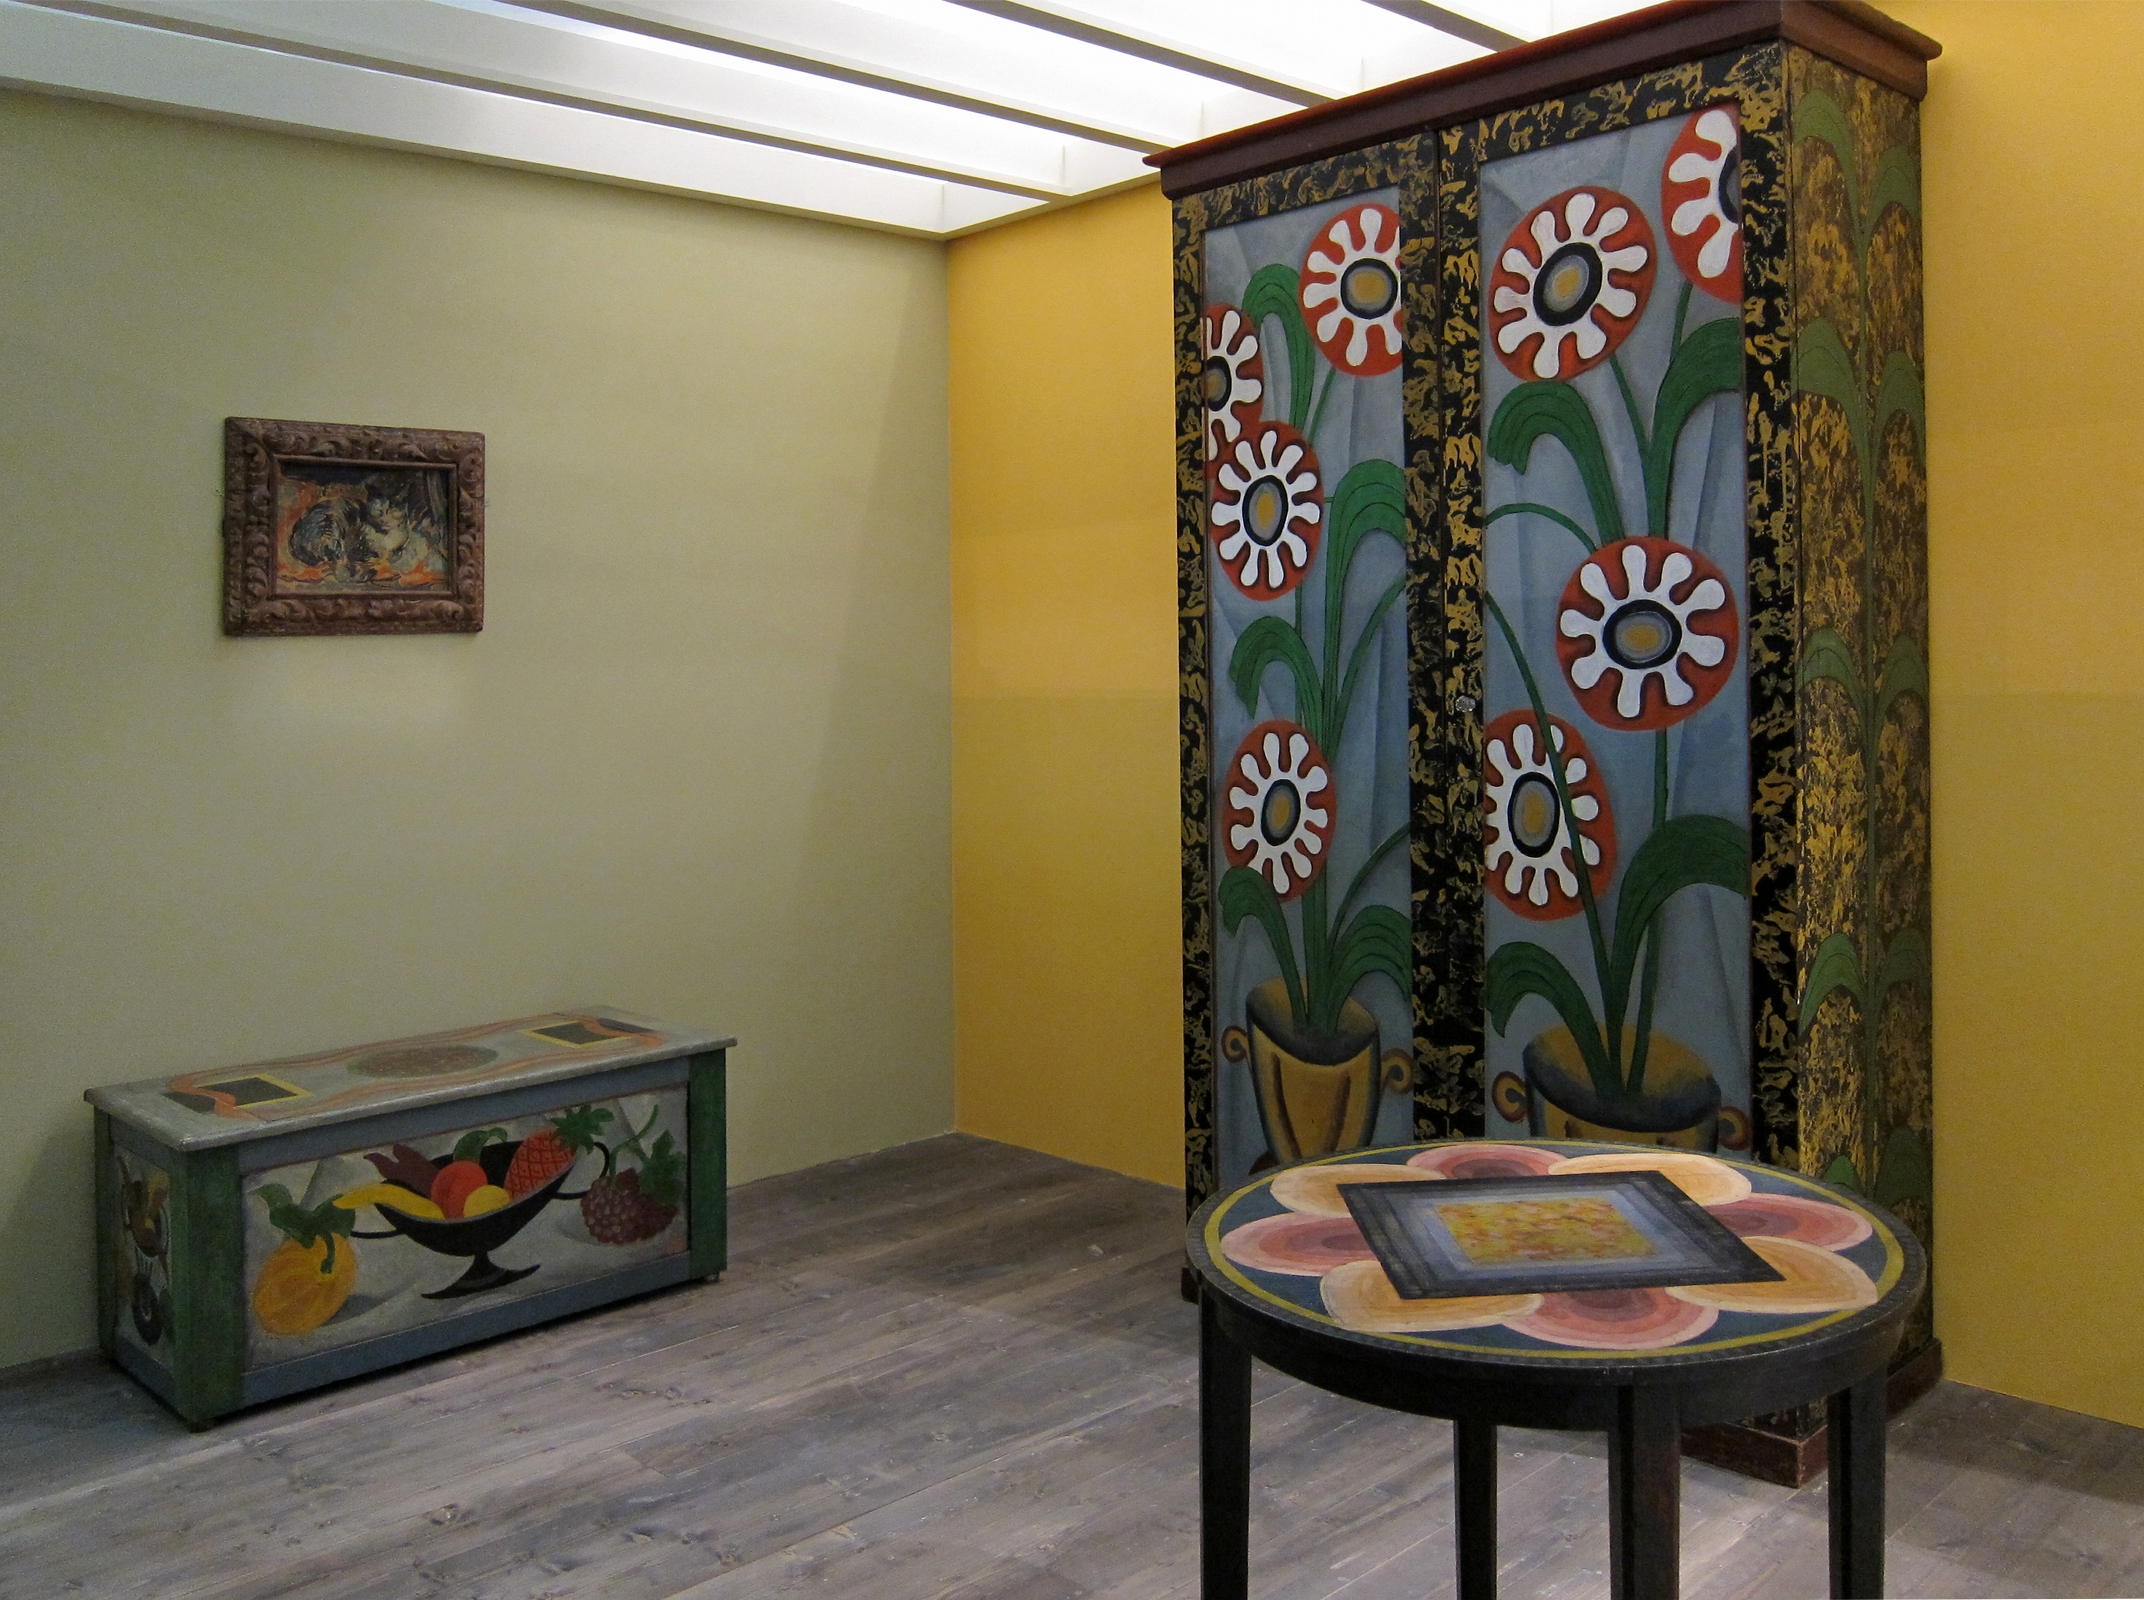 File roubaix roger fry mobilier decor jpg wikimedia commons - Decoration mural design ...